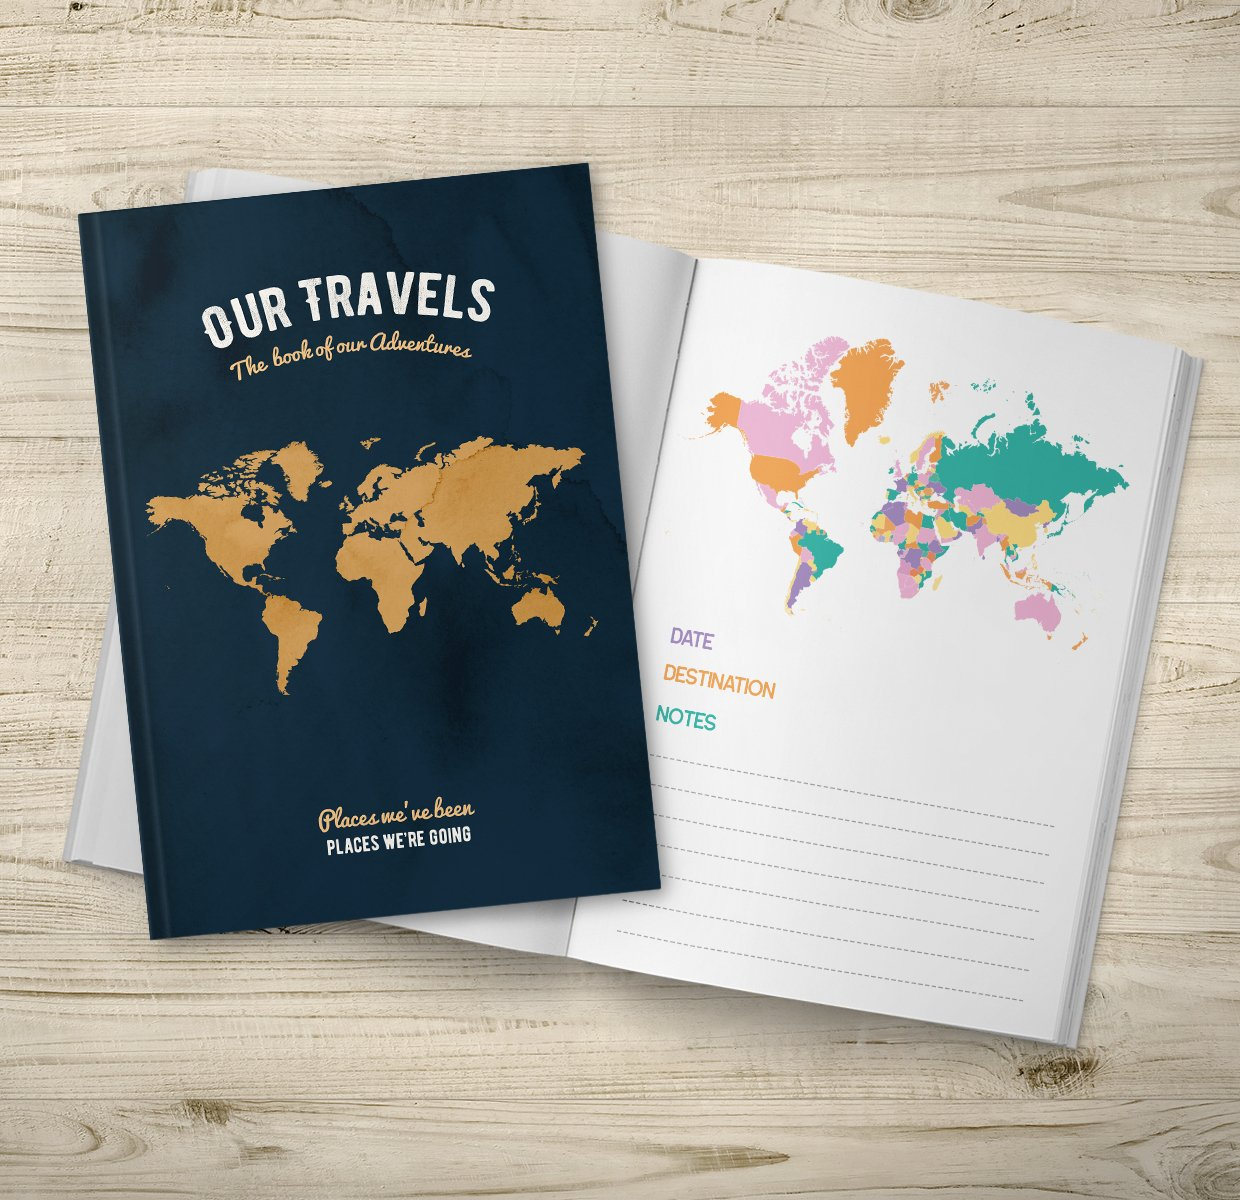 Our Travels Journal